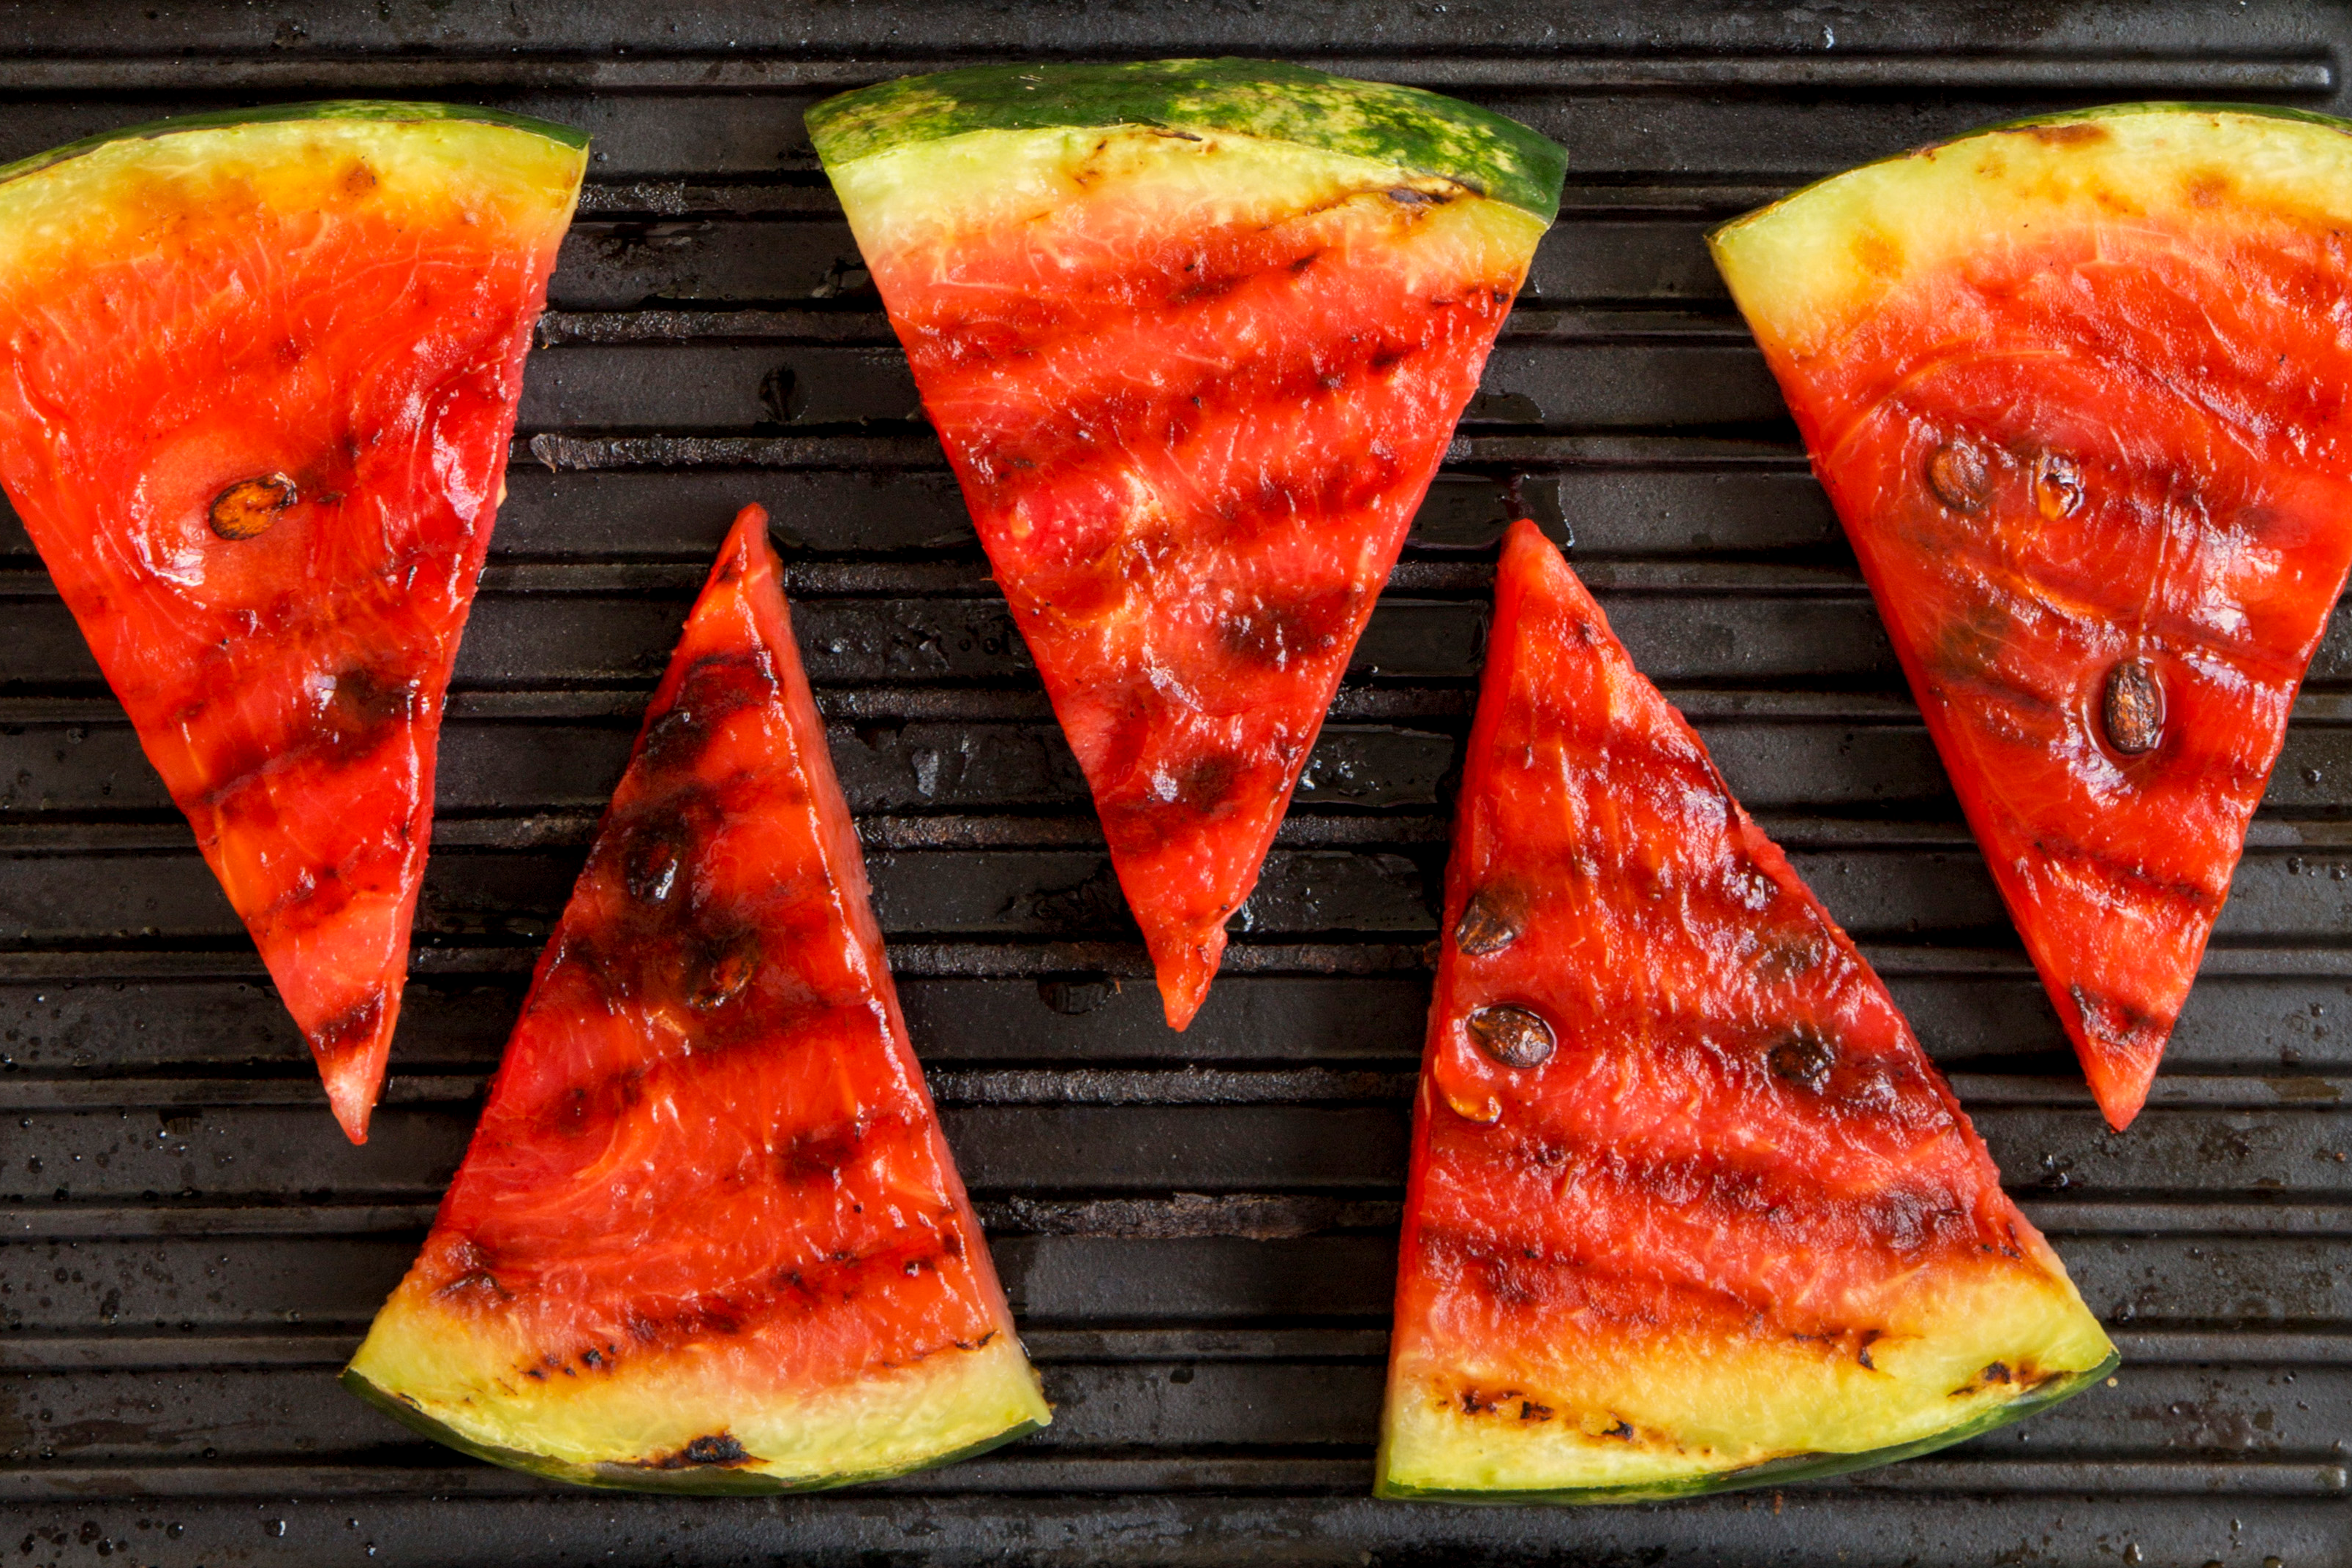 Slices of grilled watermelon in grilling pan, top view. Flat lay, overhead. Close-up.